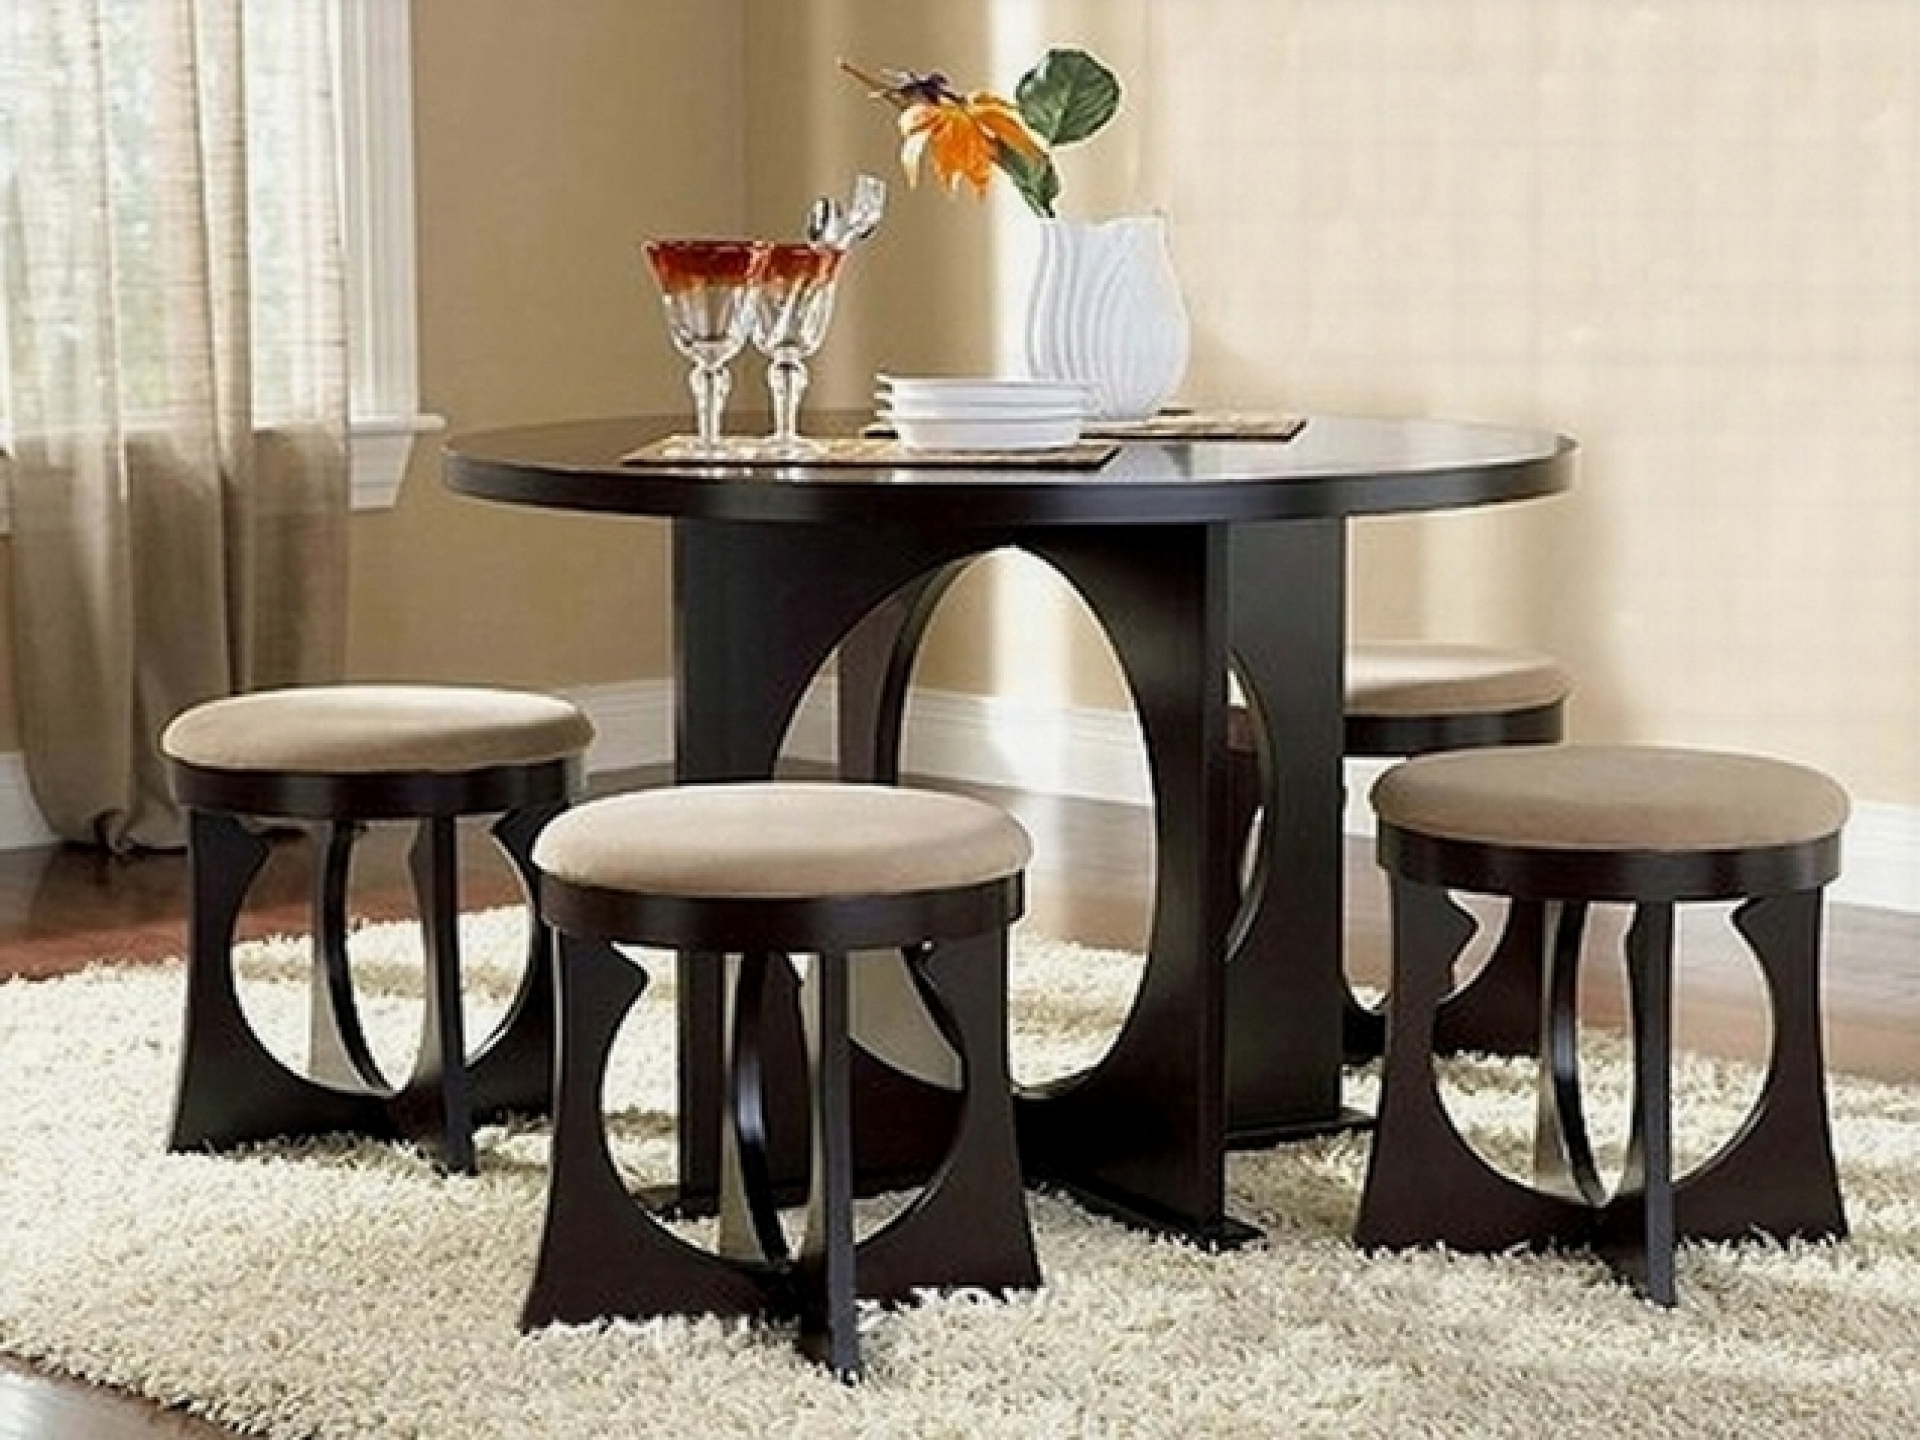 Small Dining Tables Inside 2018 Dining Room Dining Table And Chairs For Small Rooms Compact Dining (View 9 of 25)